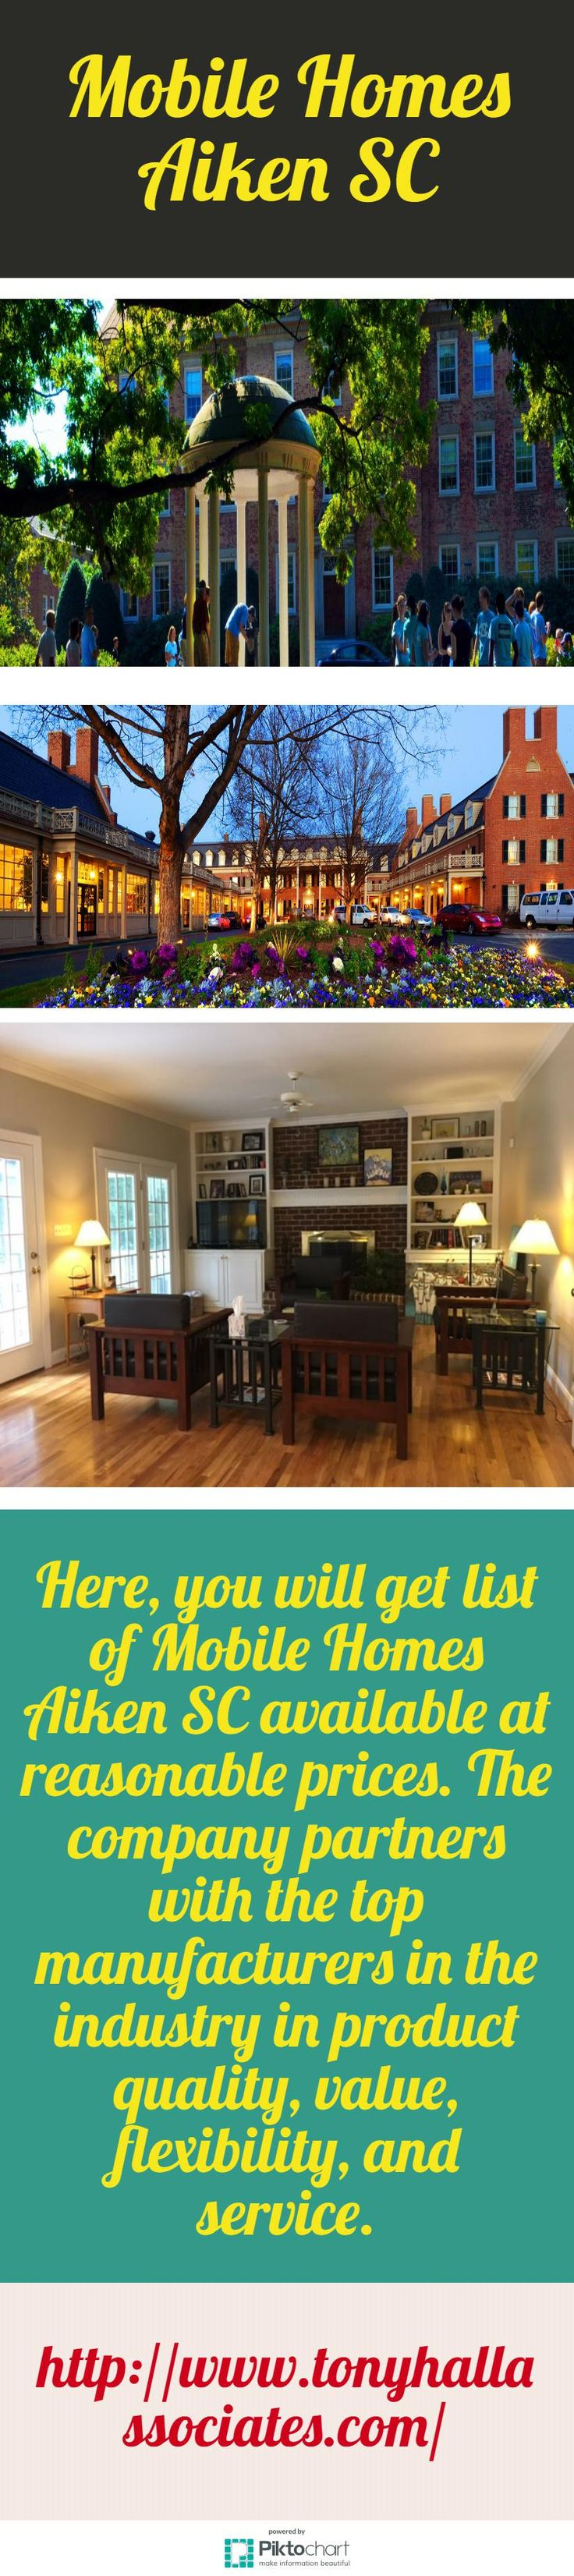 best 25 mobile home values ideas on pinterest container house here you will get list of mobile homes aiken sc available at reasonable prices the company partners with the top manufacturers in the industry in product